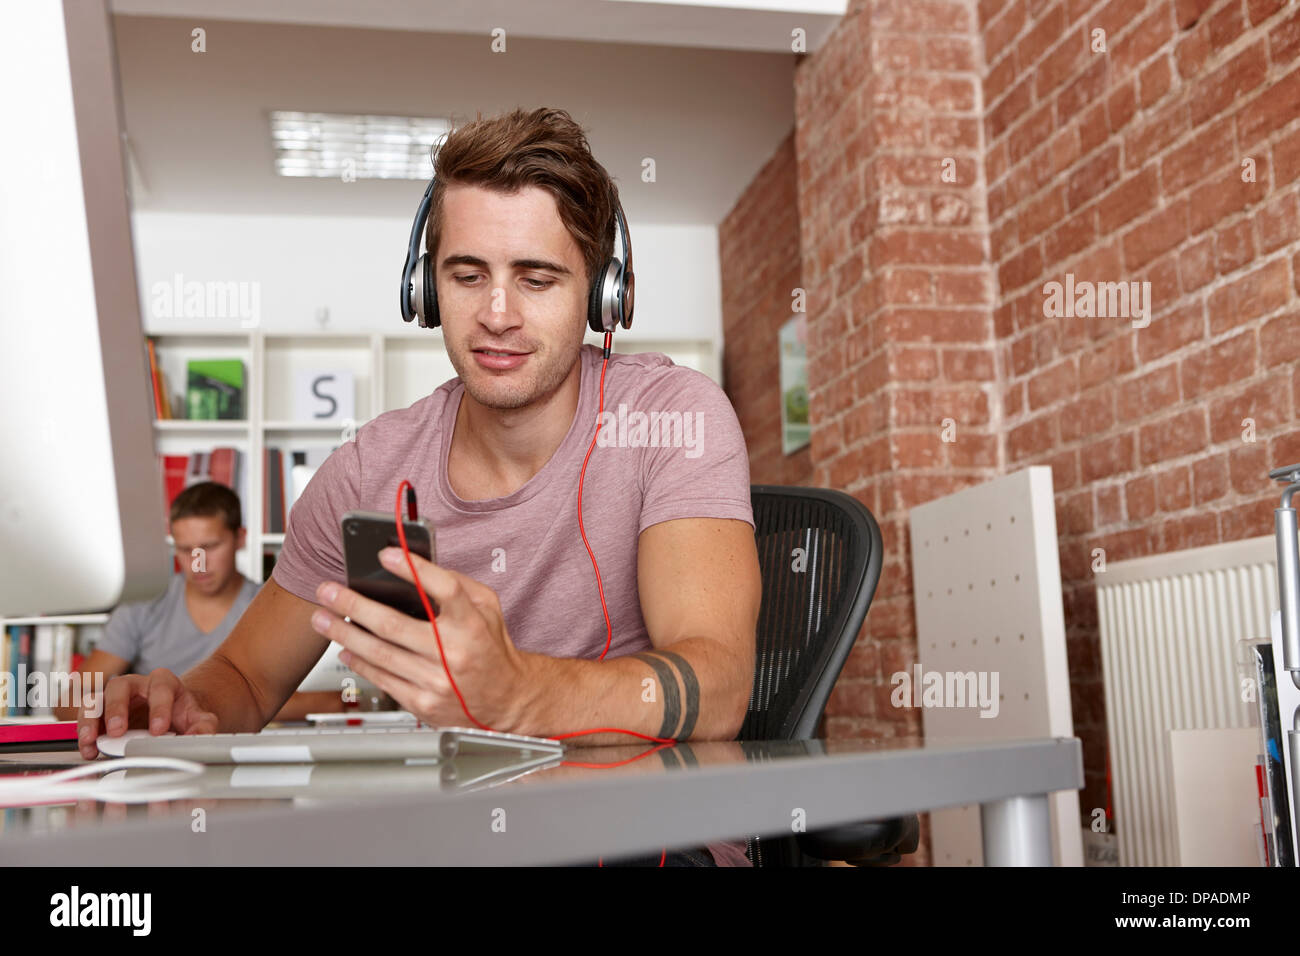 Young man wearing headphones using mp3 player - Stock Image